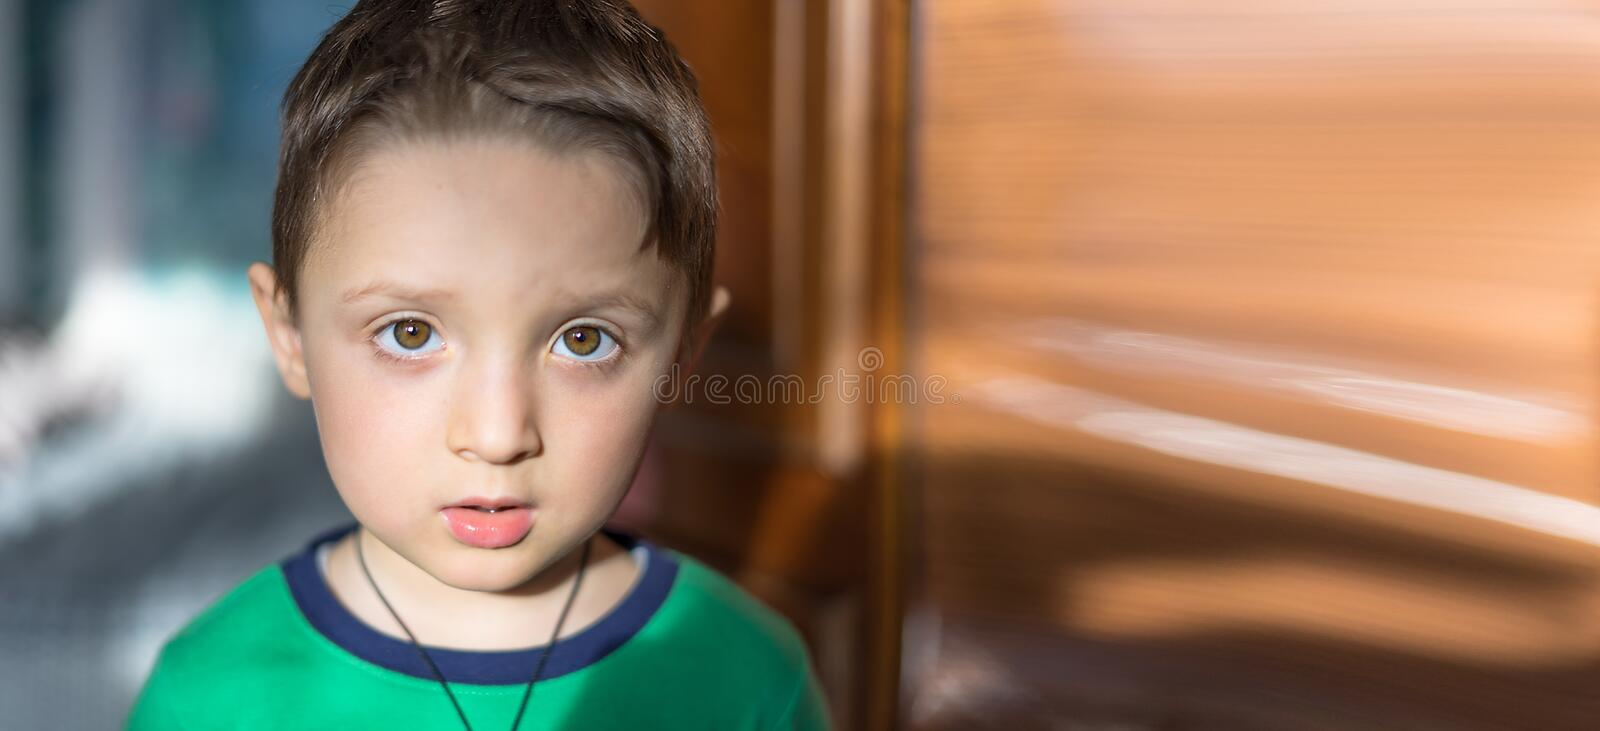 Close up portrait of a surprised european baby boy looking at camera over light background royalty free stock image